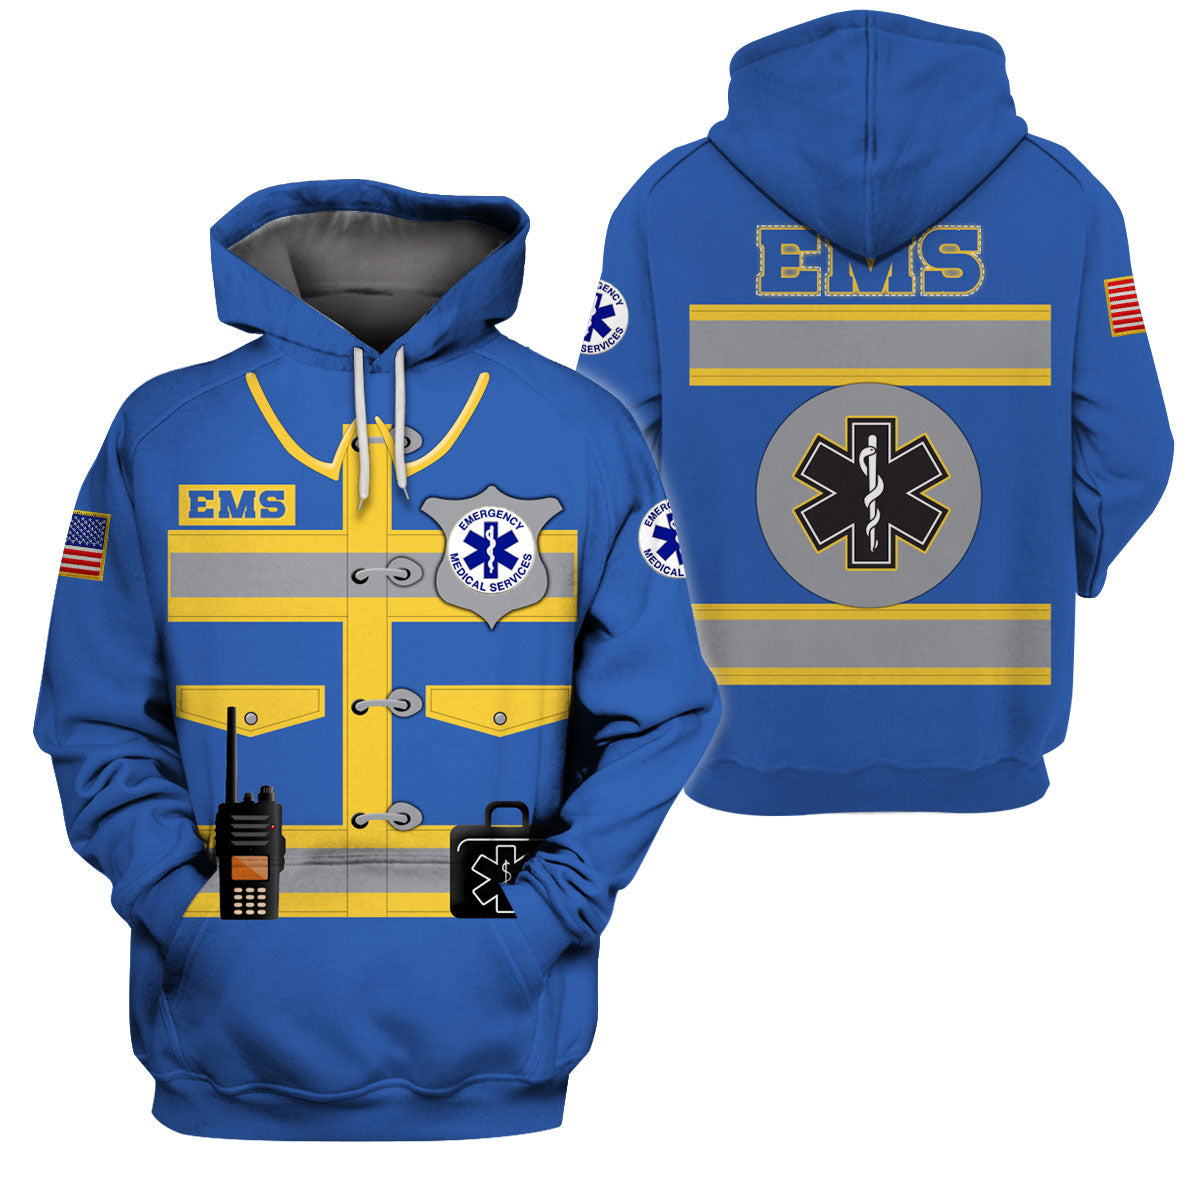 EMS JERSEY 3D ALL OVER PRINTED SHIRTS FOR MEN AND WOMEN - GnWarriors Clothing